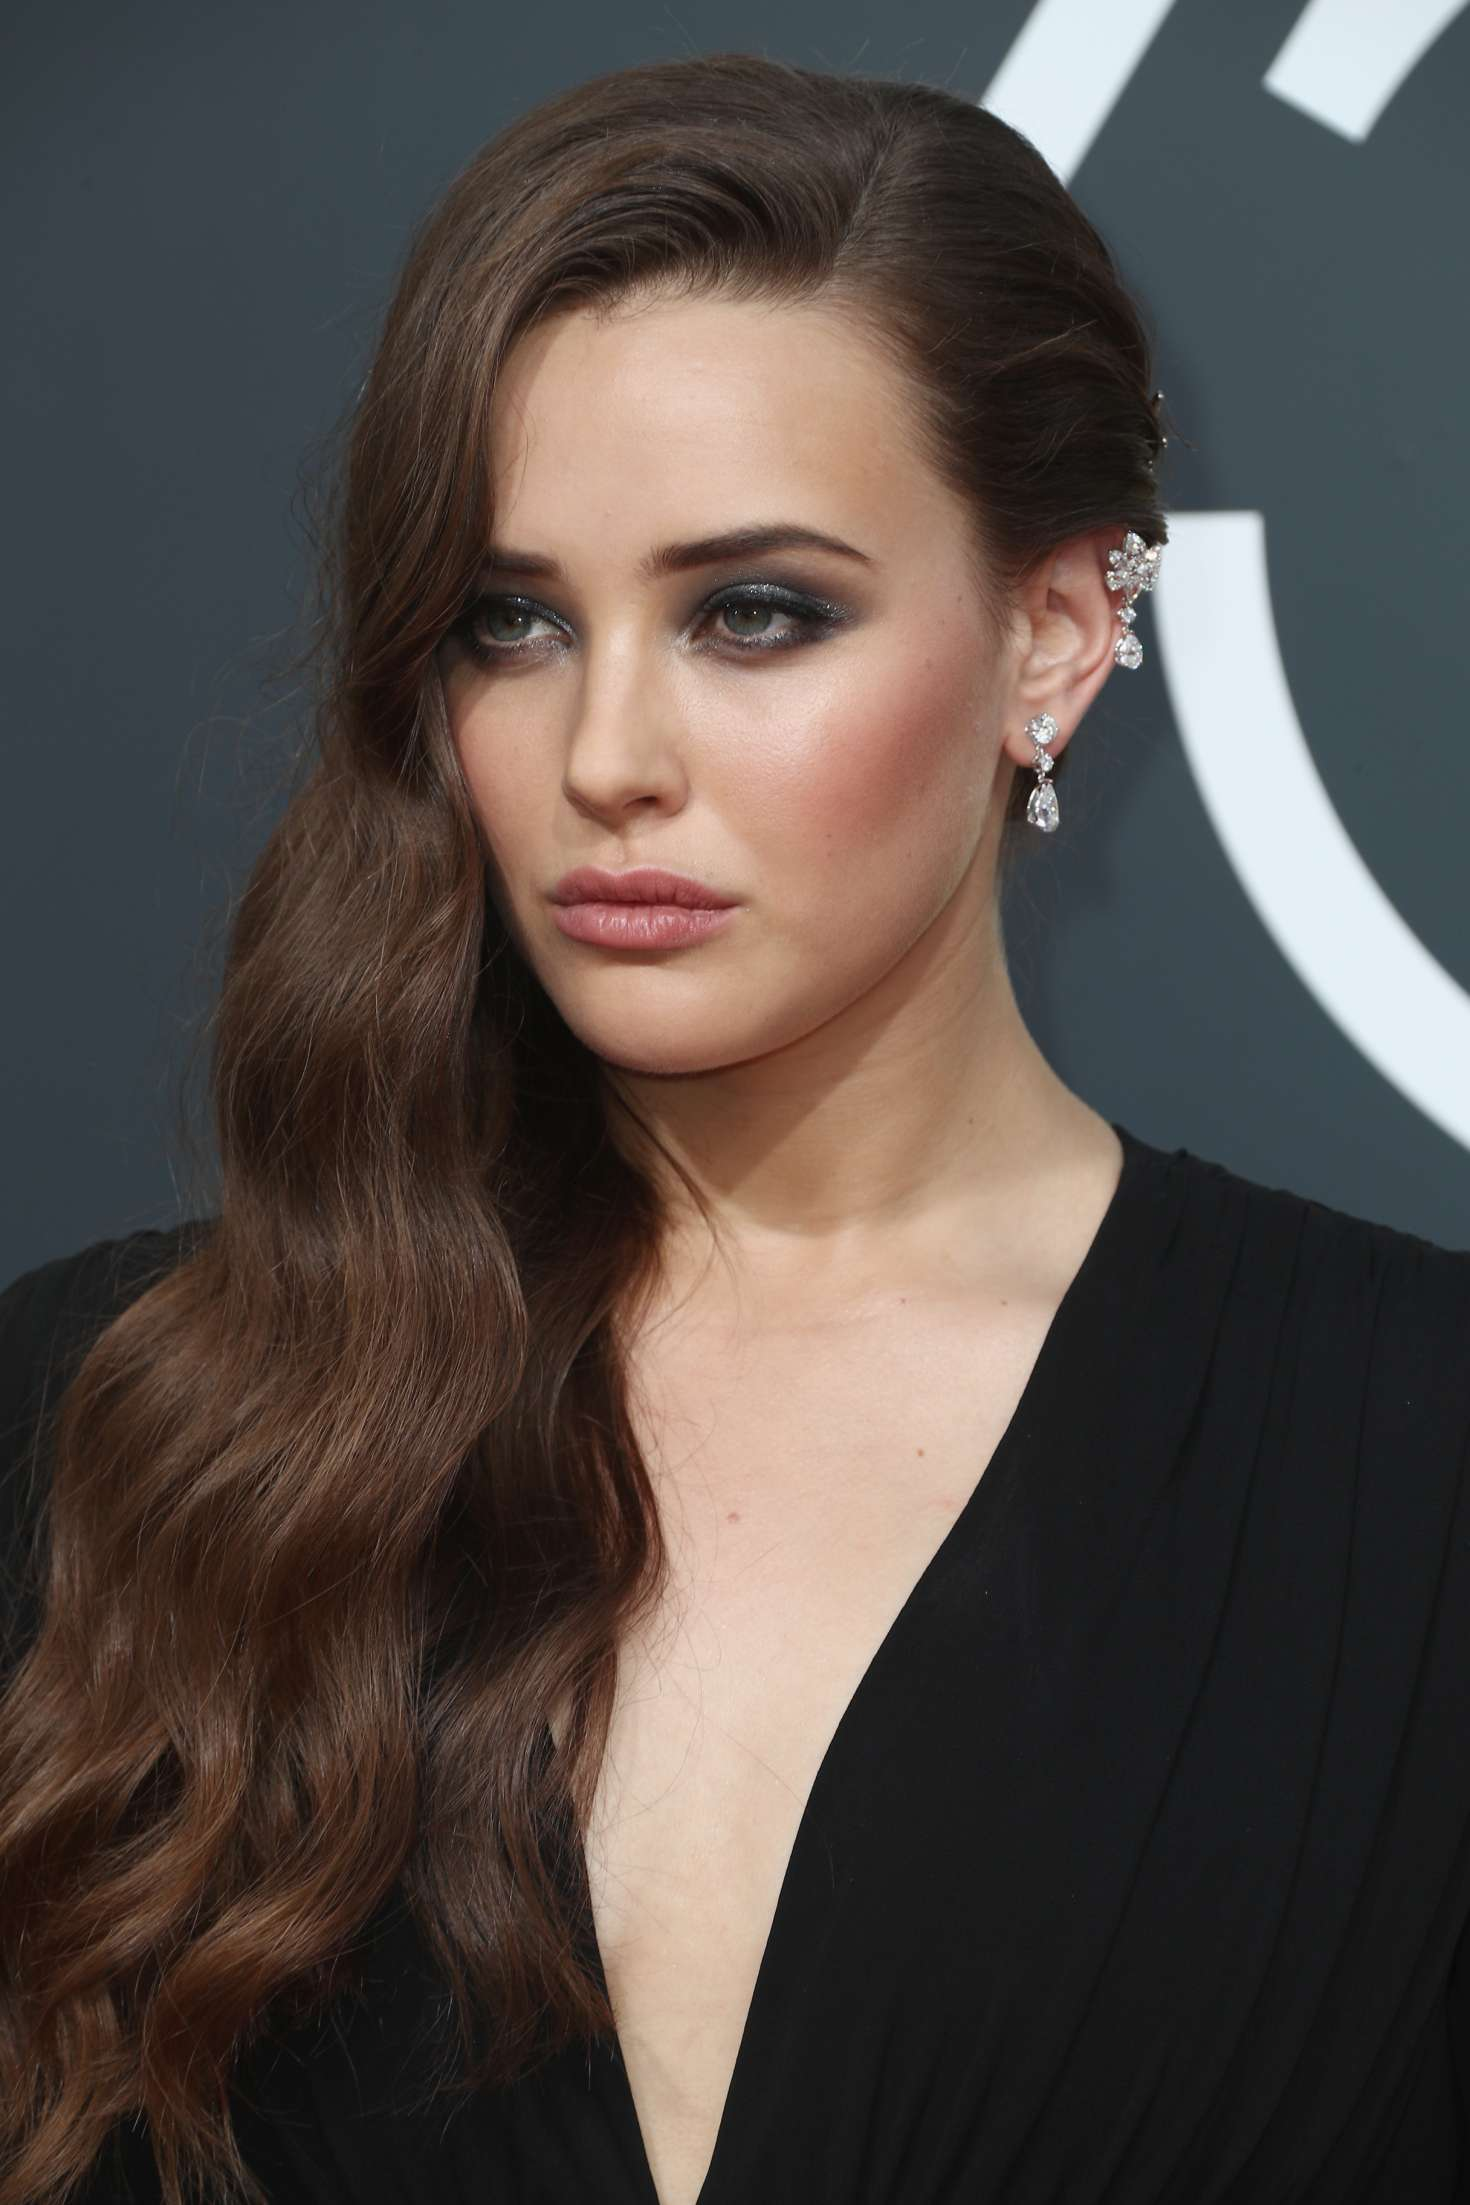 langford singles Katherine langford romantically linked to her 13 reasons why co-star dylan minnette they played an on-screen couple, hannah, and clay they love posing for pictures together and sharing the.